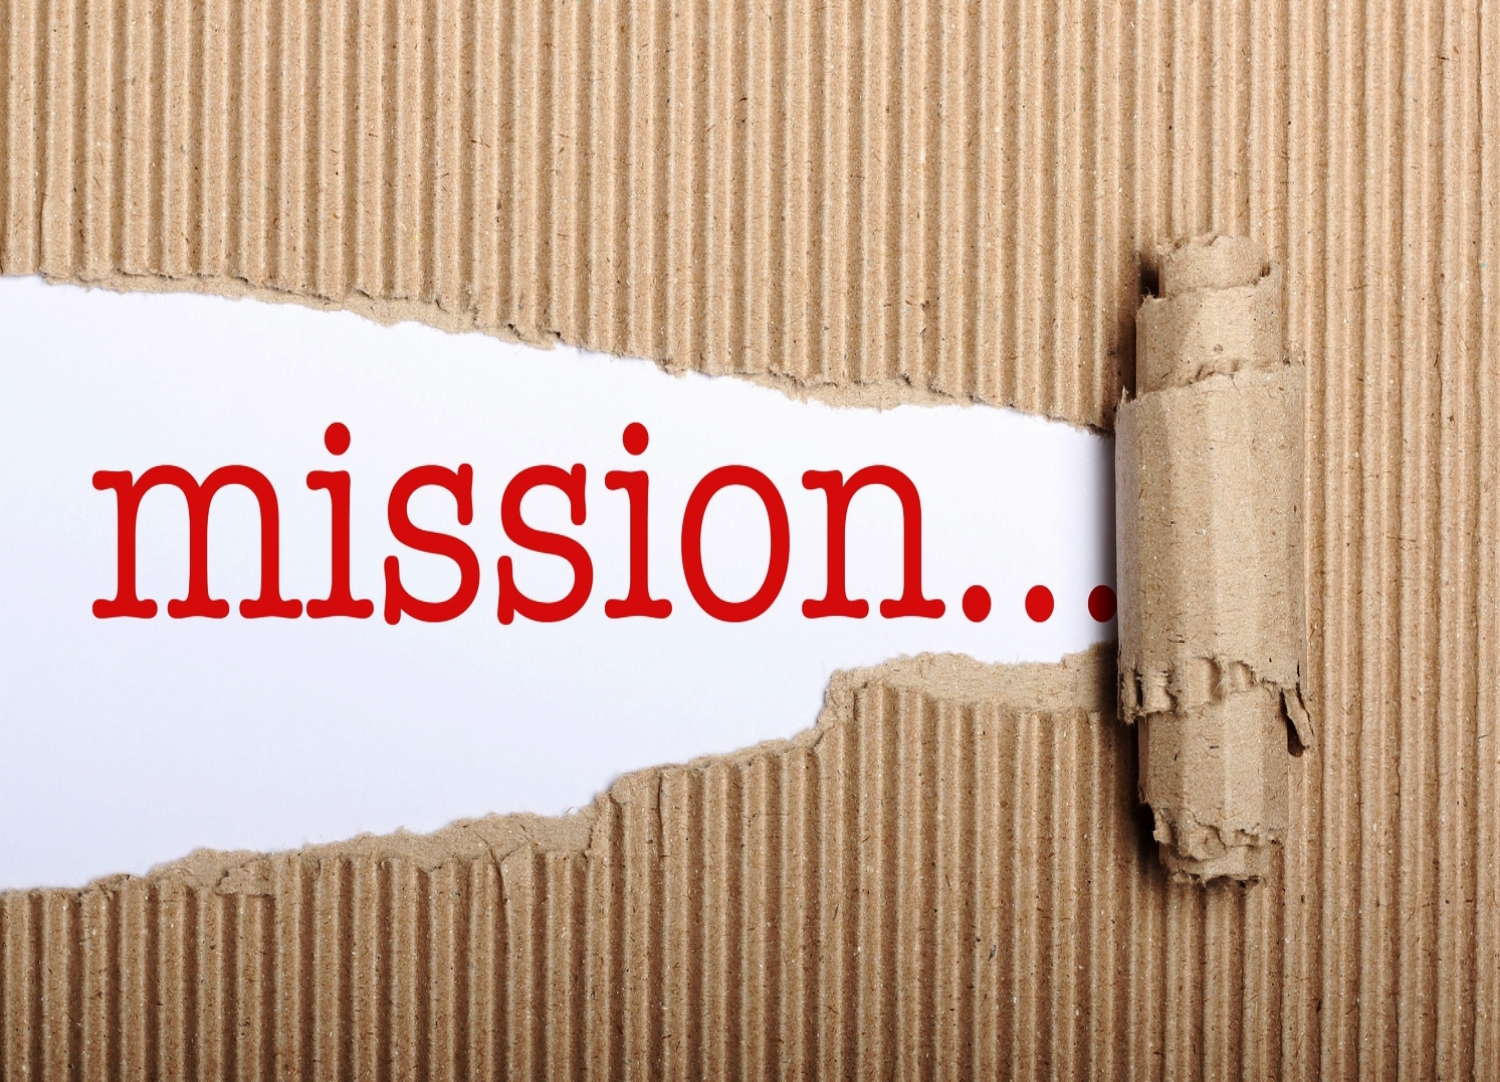 bigstock-Mission-Text-On-Paper-And-Torn-52316071.jpg